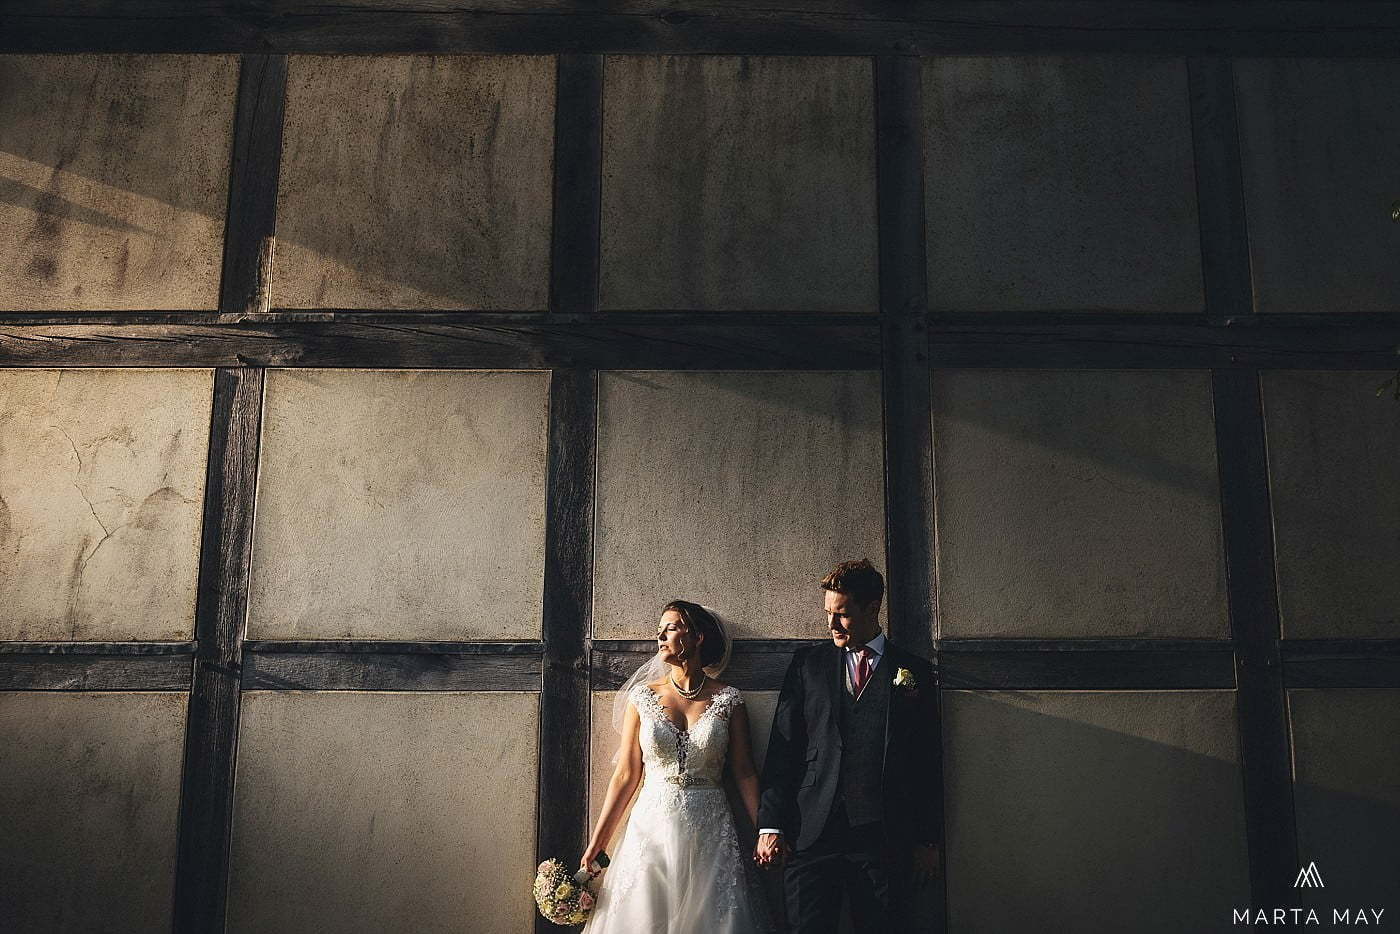 Redhouse Barn wedding venue